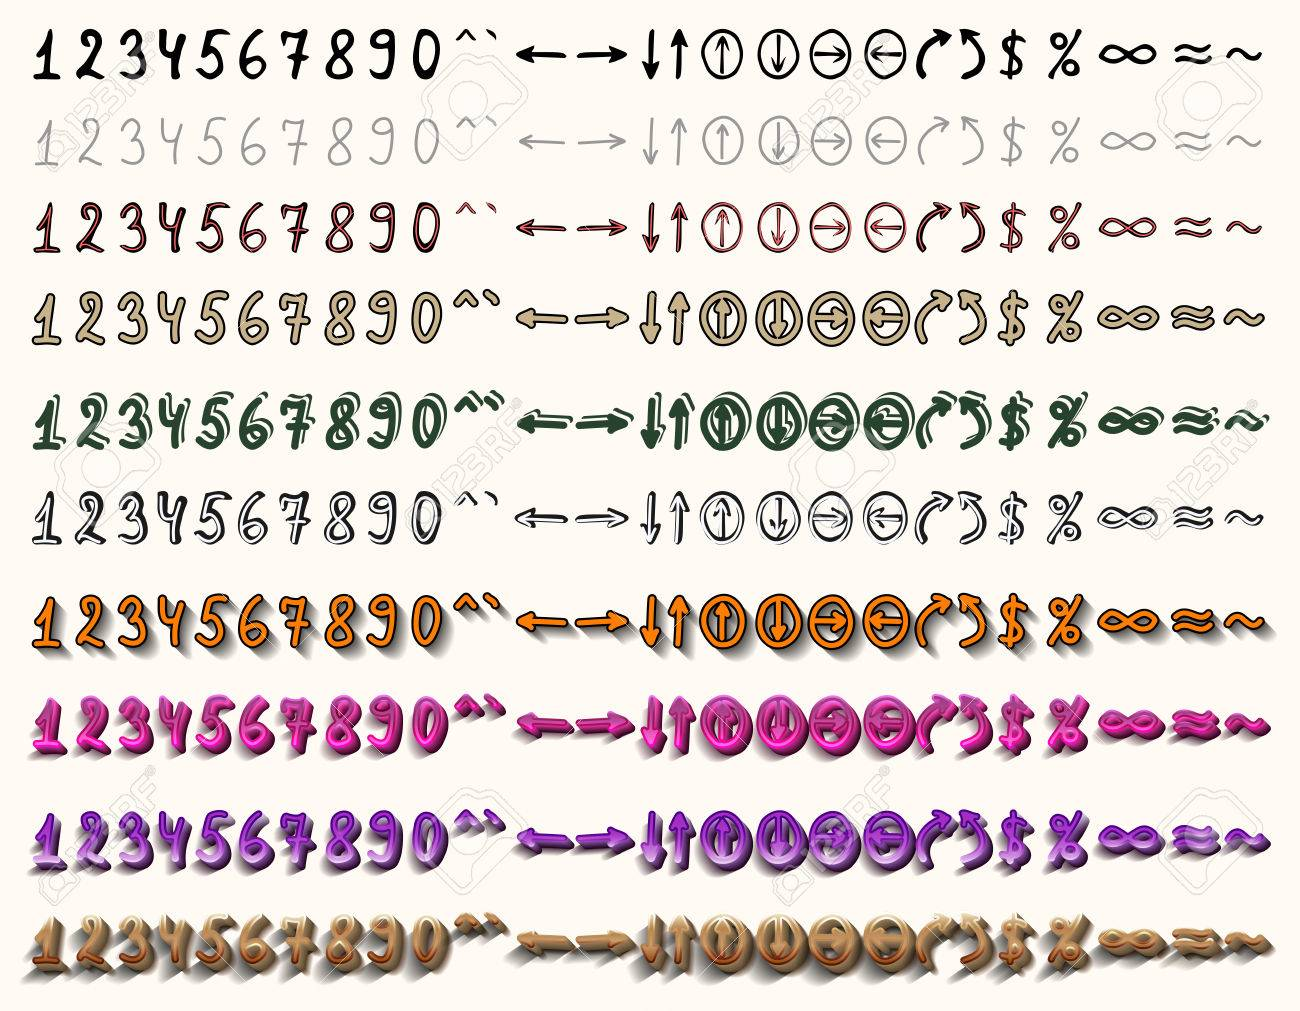 A Set Of Ten Variants In Different Styles The Numbers And Arrows